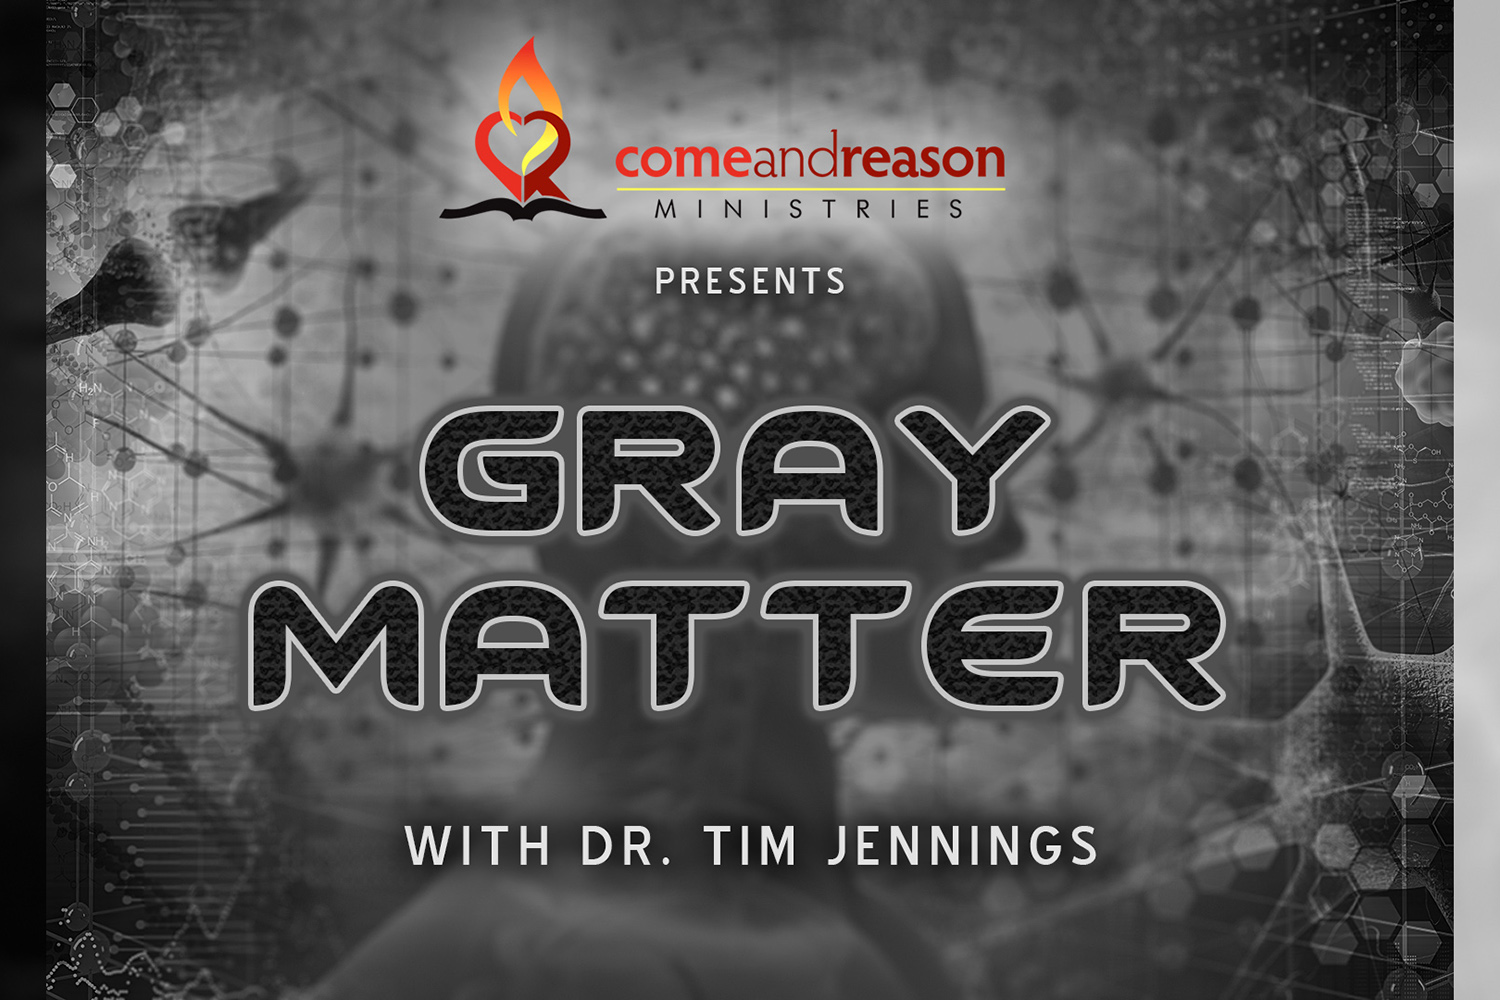 Gray Matter 07: Metaphors of sin